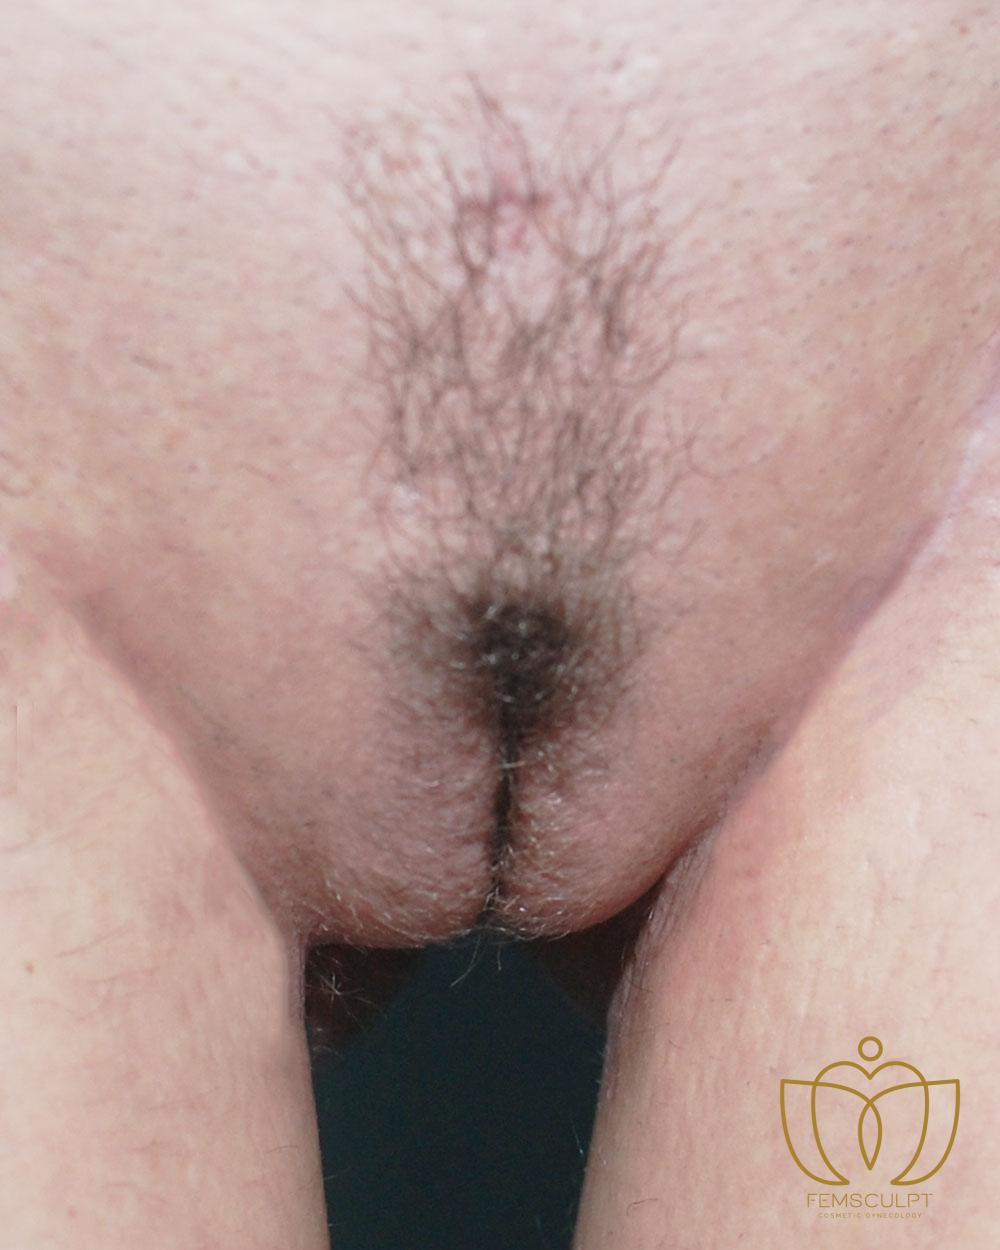 5. Labia Majora - Labial Puff Lithotomy Patient Photo - Case 904 - after view-1